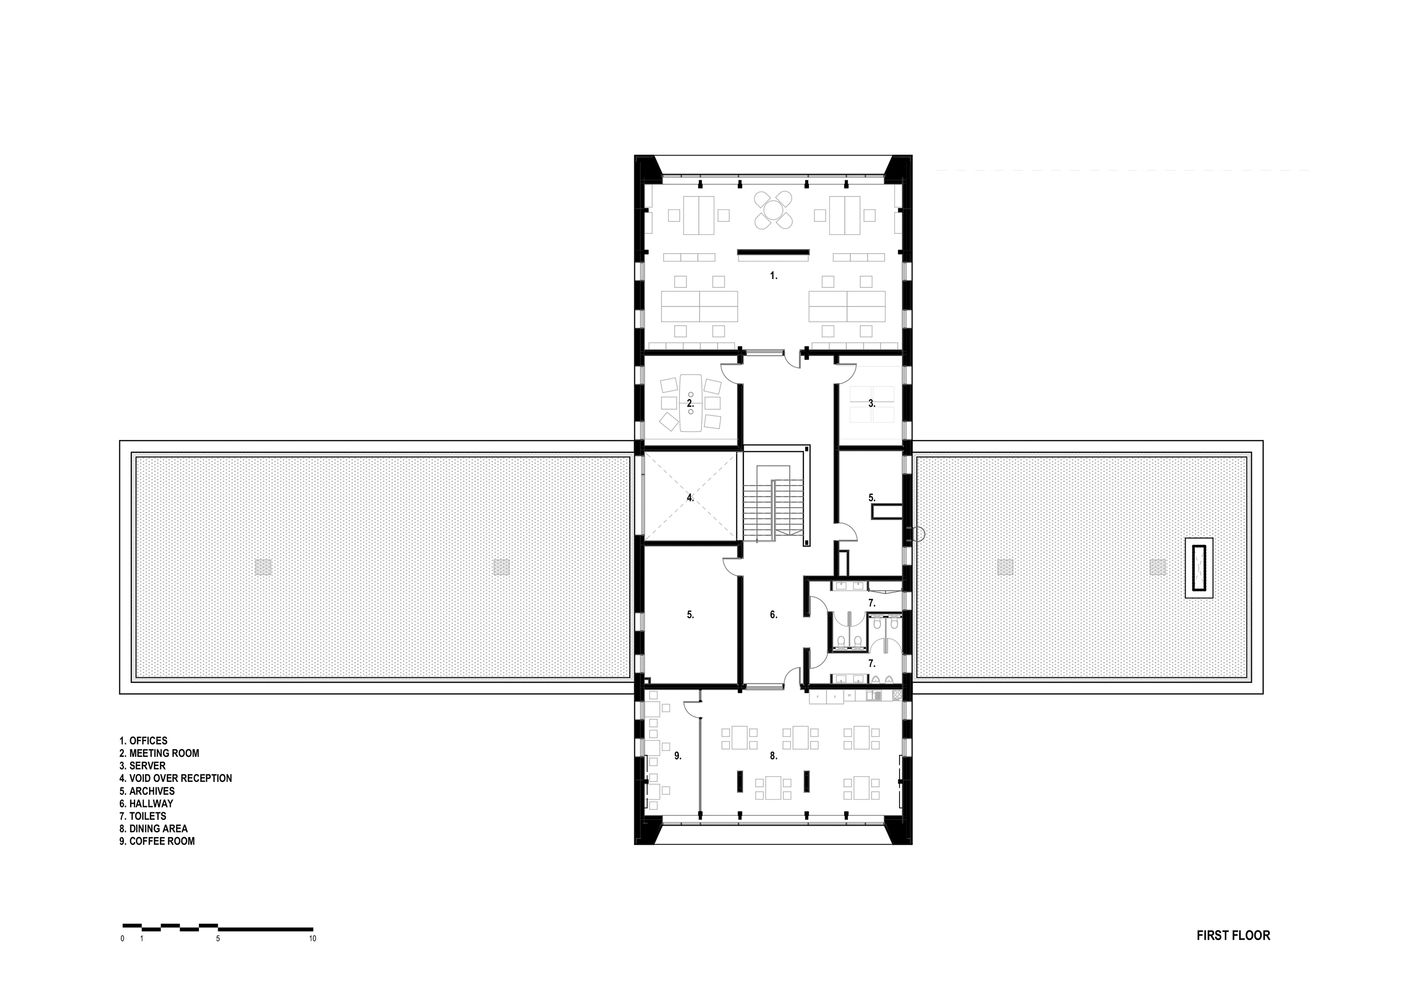 Gallery Of Clt Multi Confort Office Building Tecto 24 In 2020